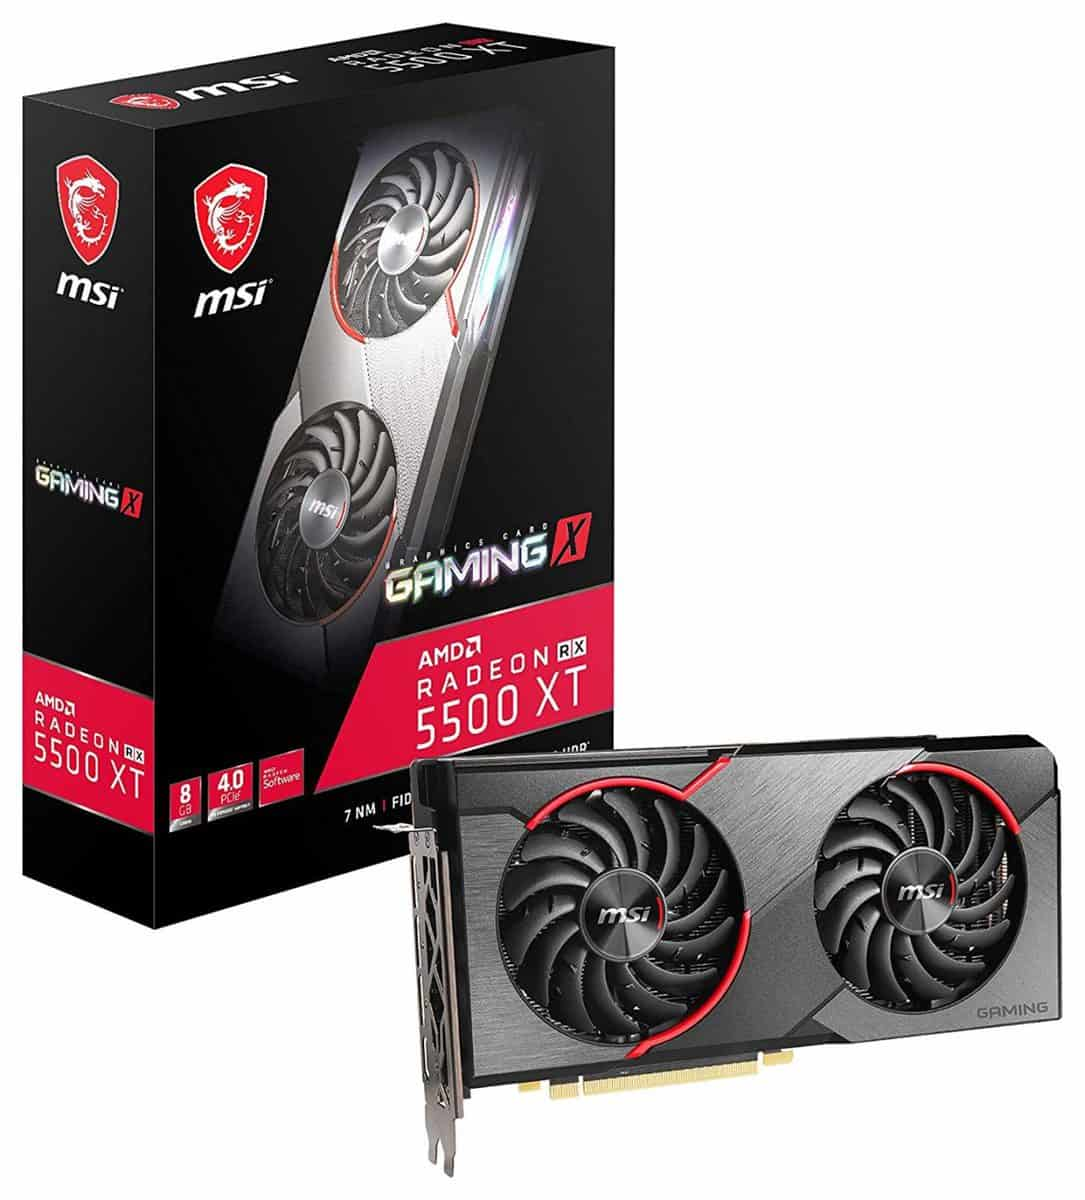 MSI Radeon RX 5500 XT GAMING X 8 GB